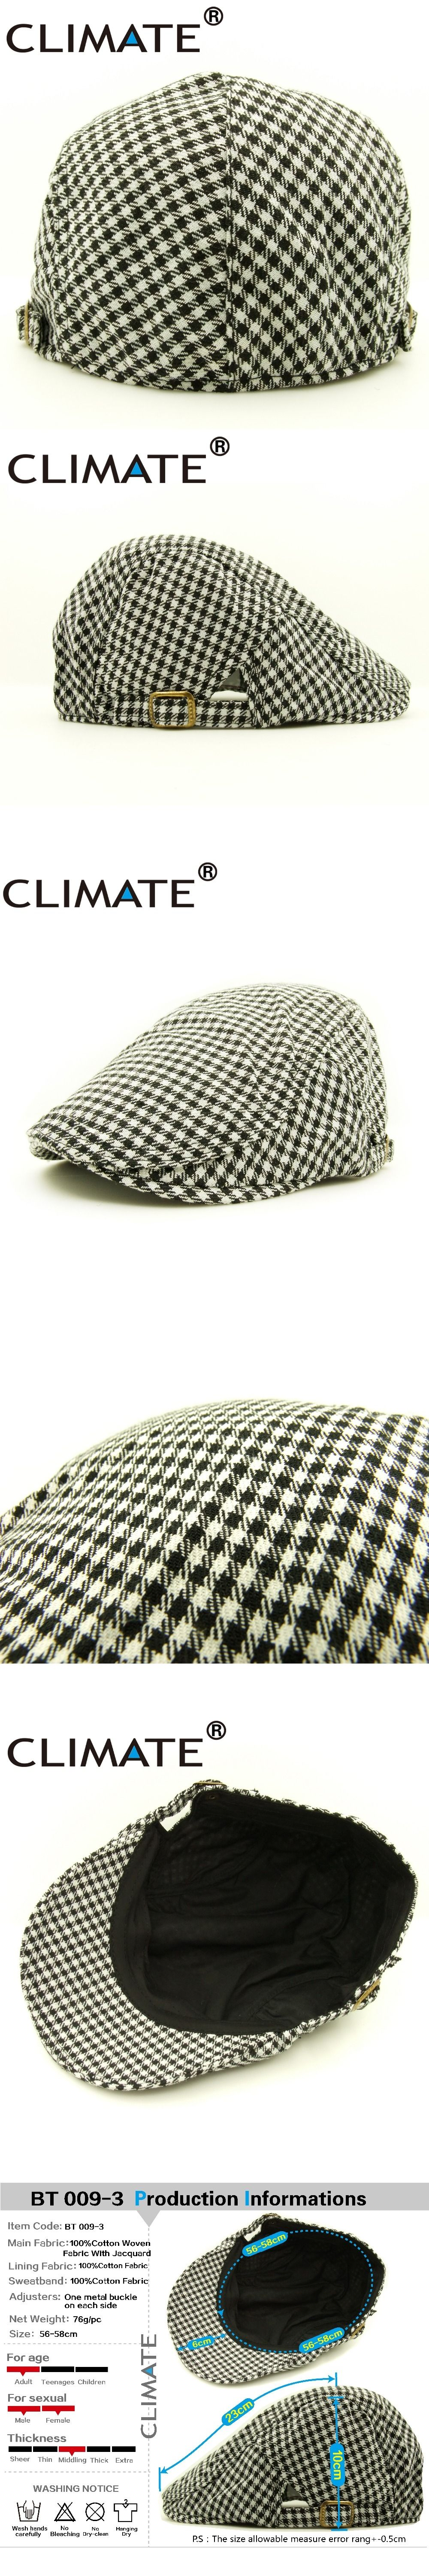 563d0cdb500d8 CLIMATE Men Women Cotton Woven Checked Plaid Black White Berets Caps Flat  Hat Houndstooth for adult unisex adjustable